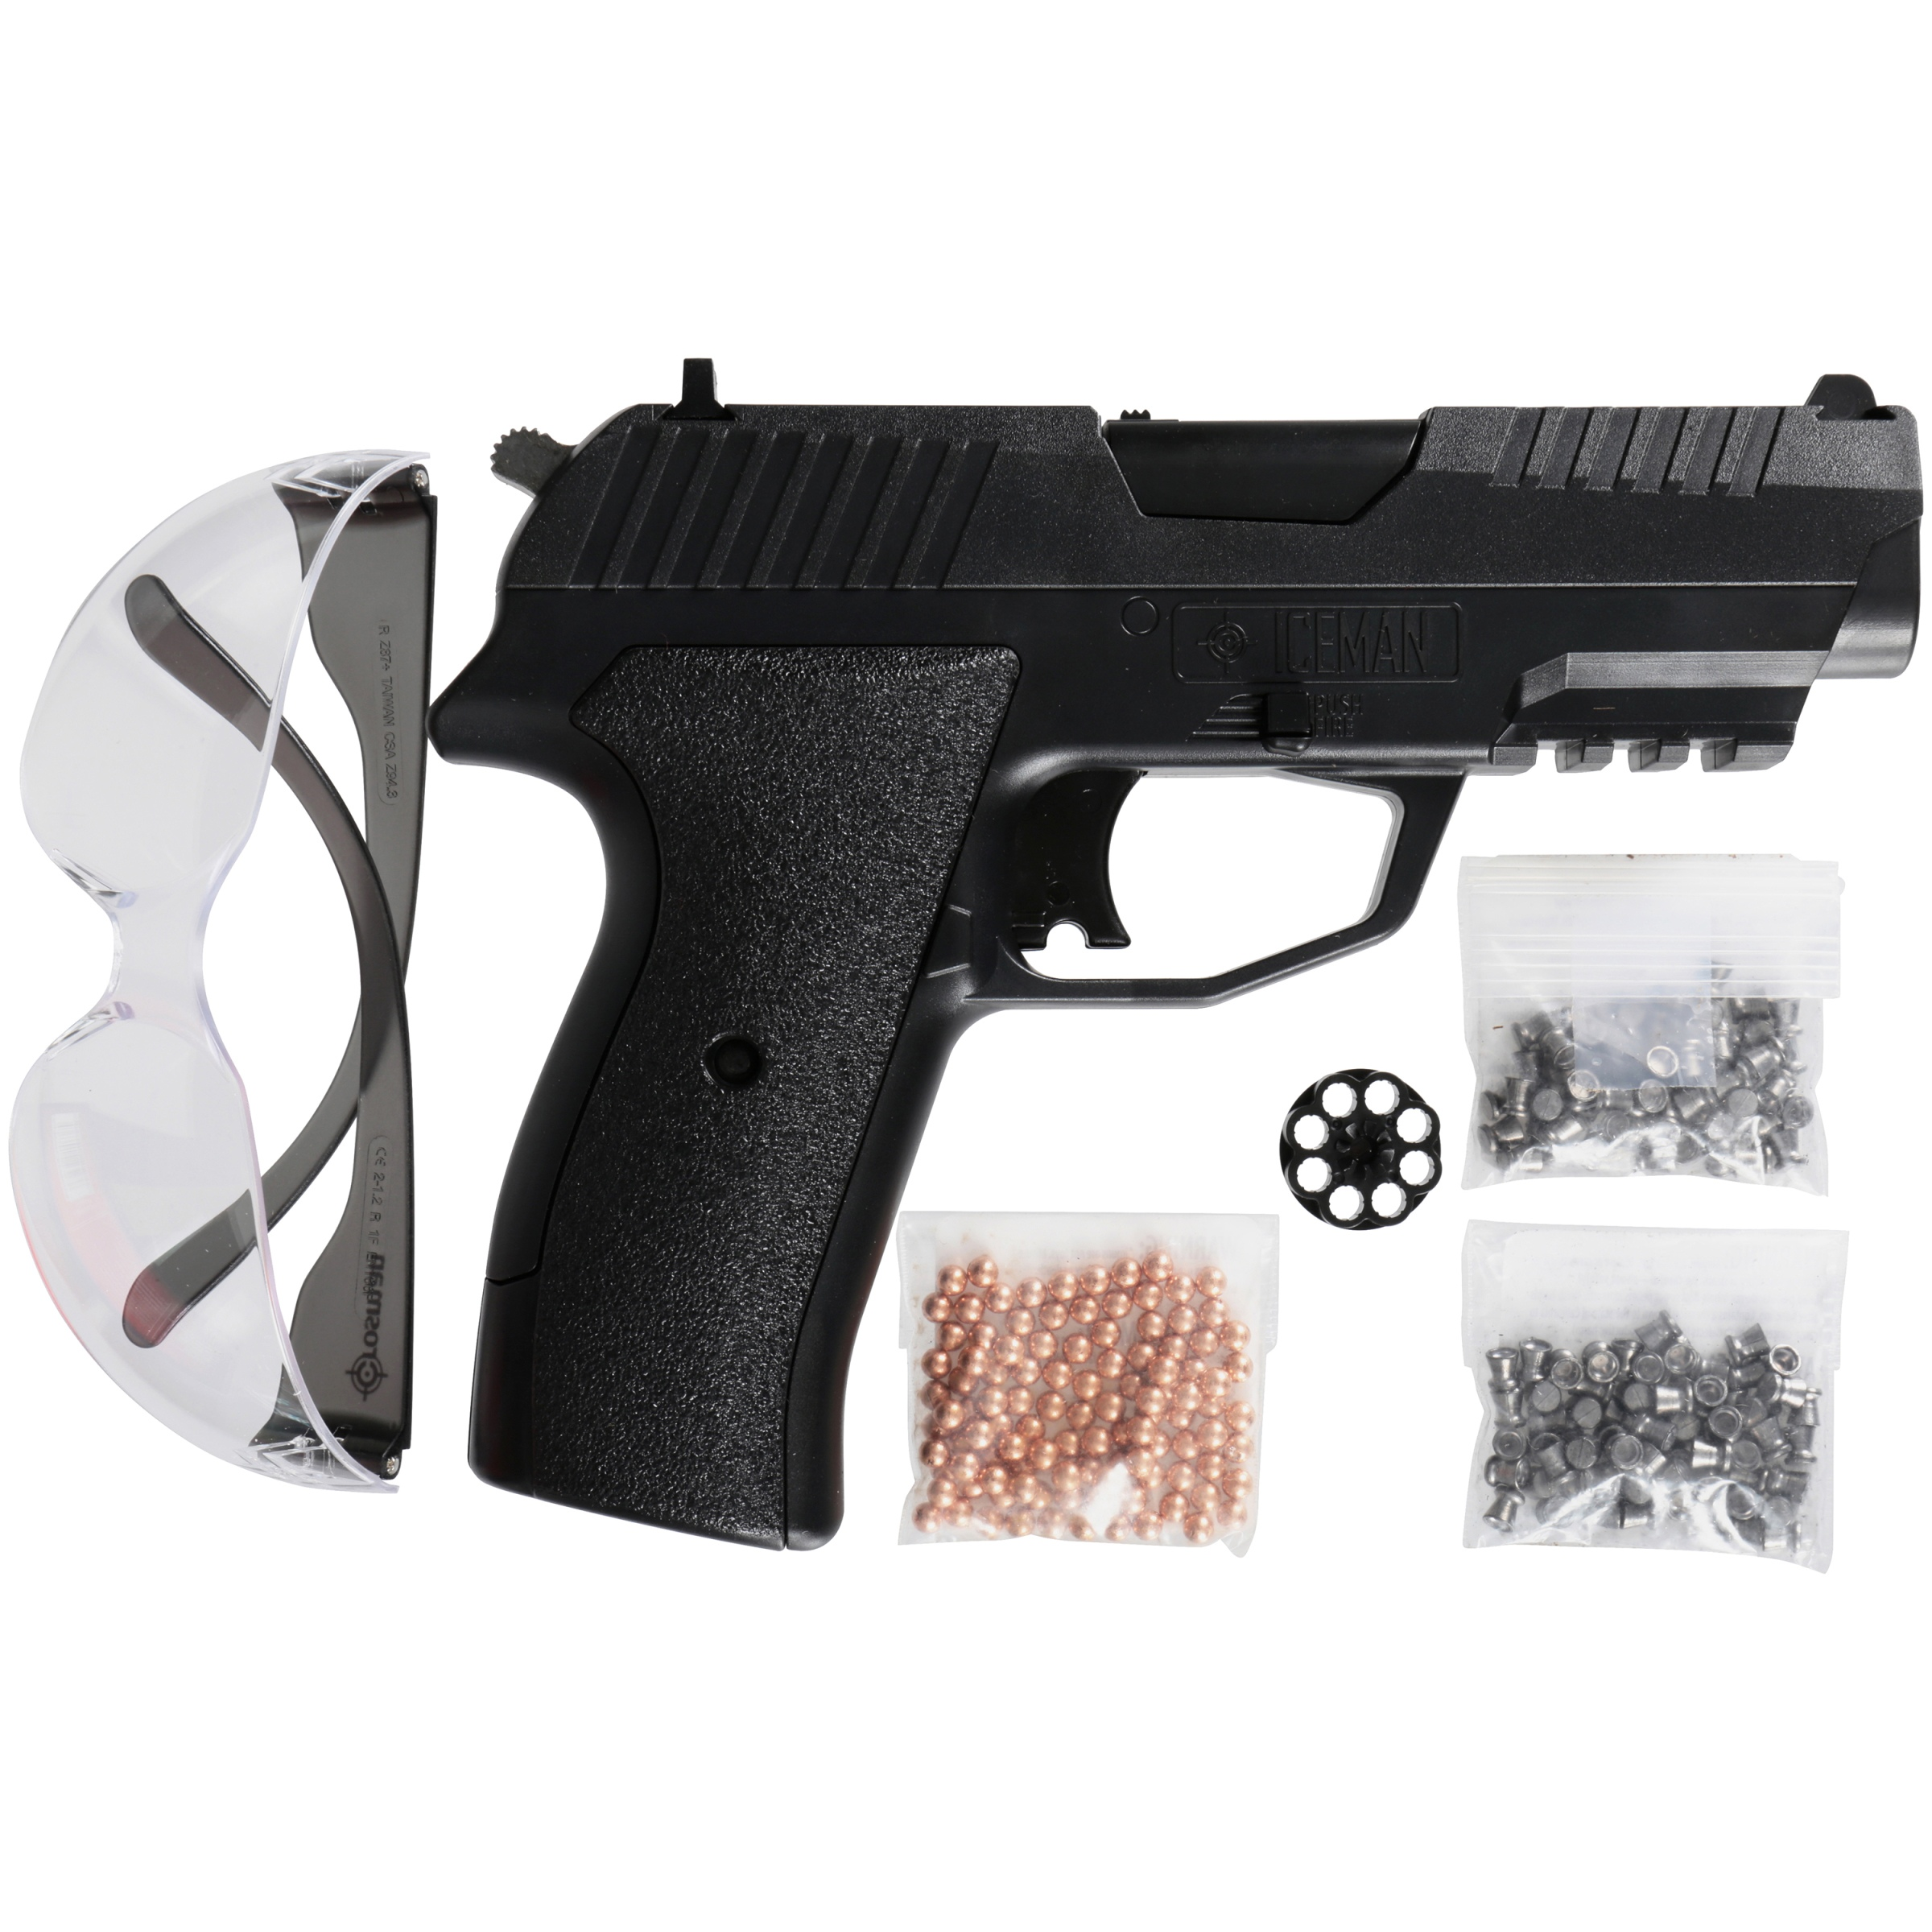 Crosman Iceman CCICE7BKT Air Pistol Kit w/100 BB's, Glasses